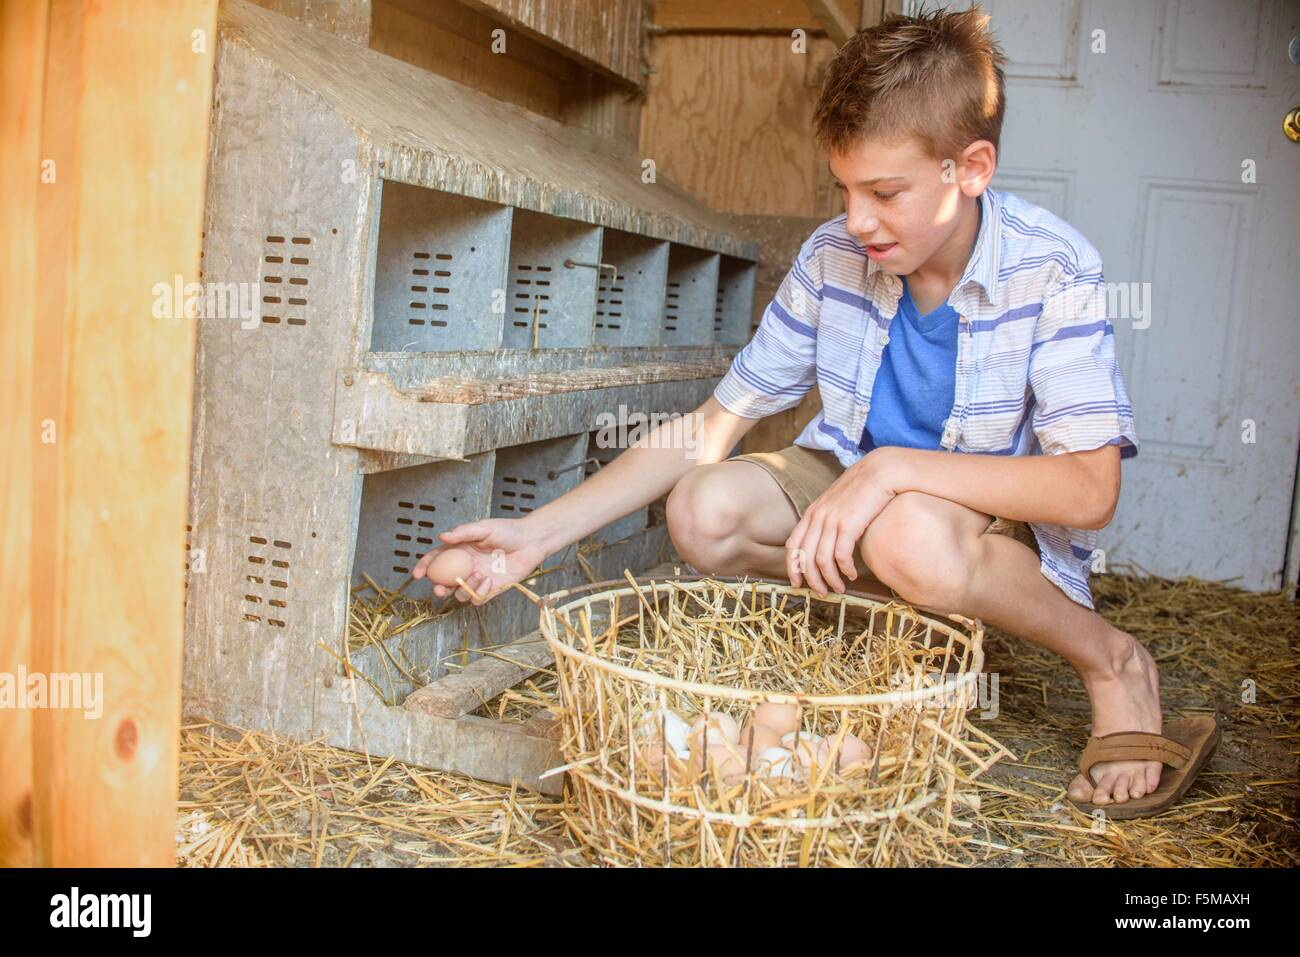 Boy collecting eggs from hen house - Stock Image